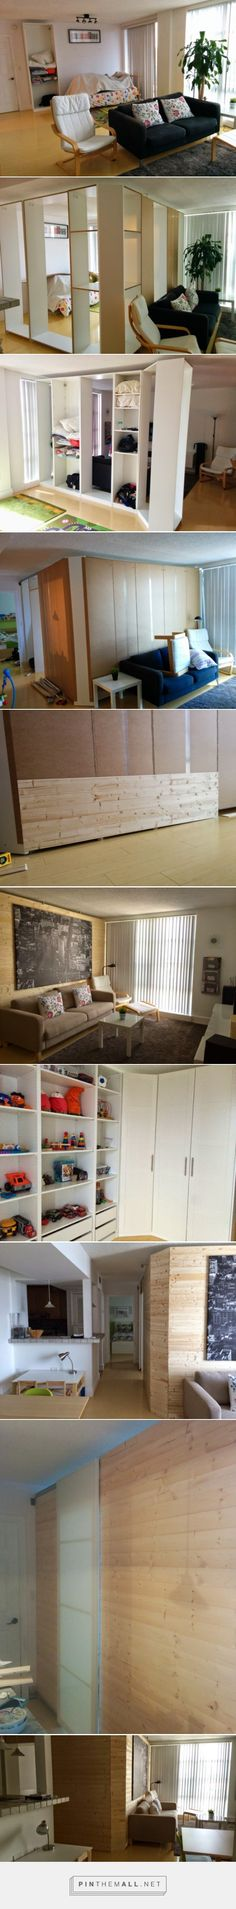 Making a Pax Room in the Living Room - IKEA Hackers - IKEA Hackers - created via http://pinthemall.net